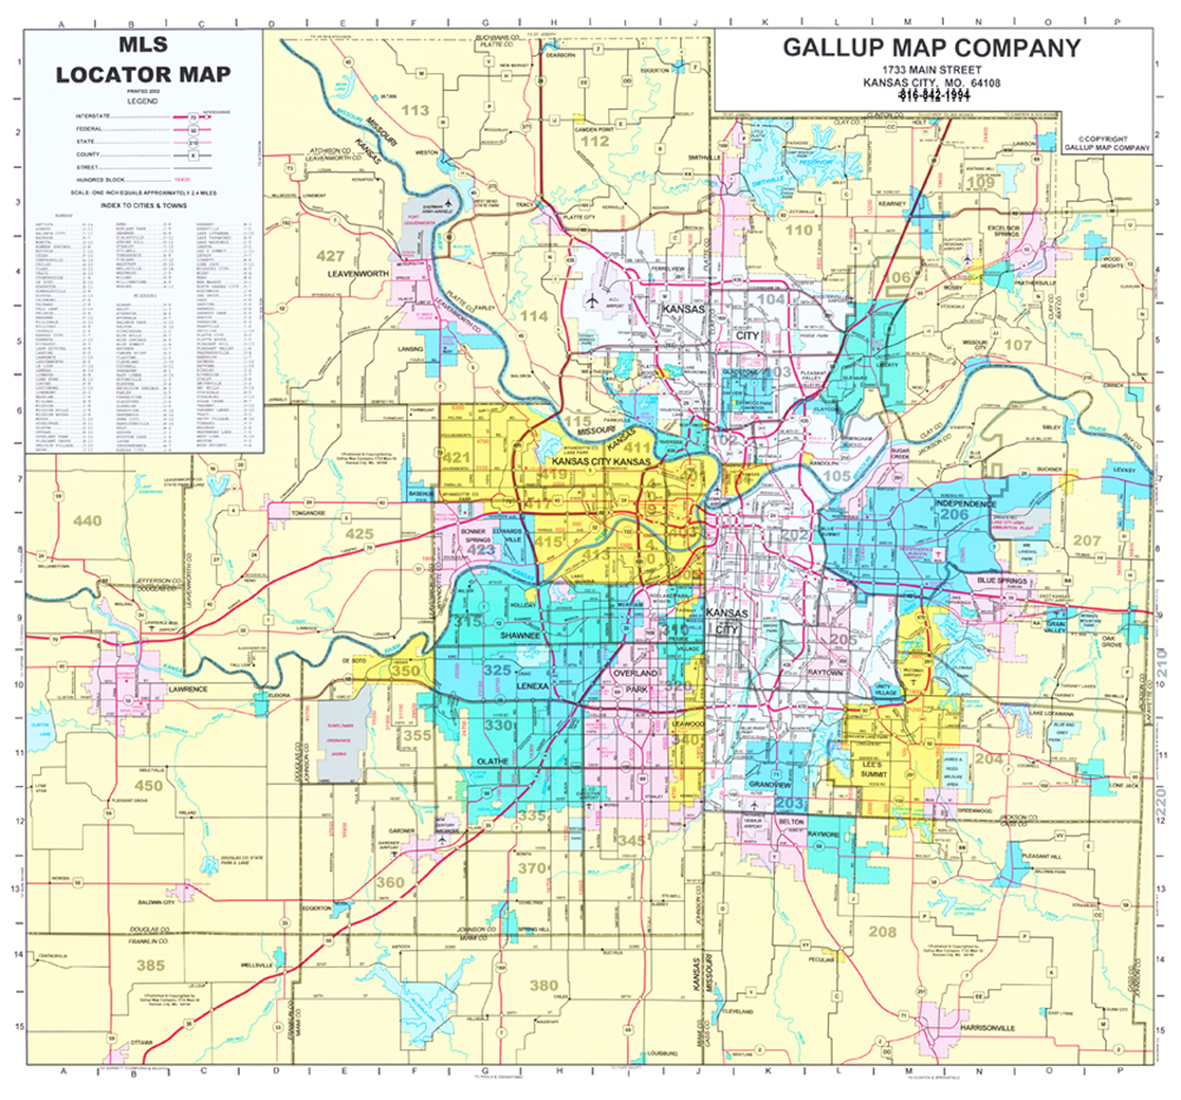 Kansas City MLS Map - Custom Sizes - Gallup Map